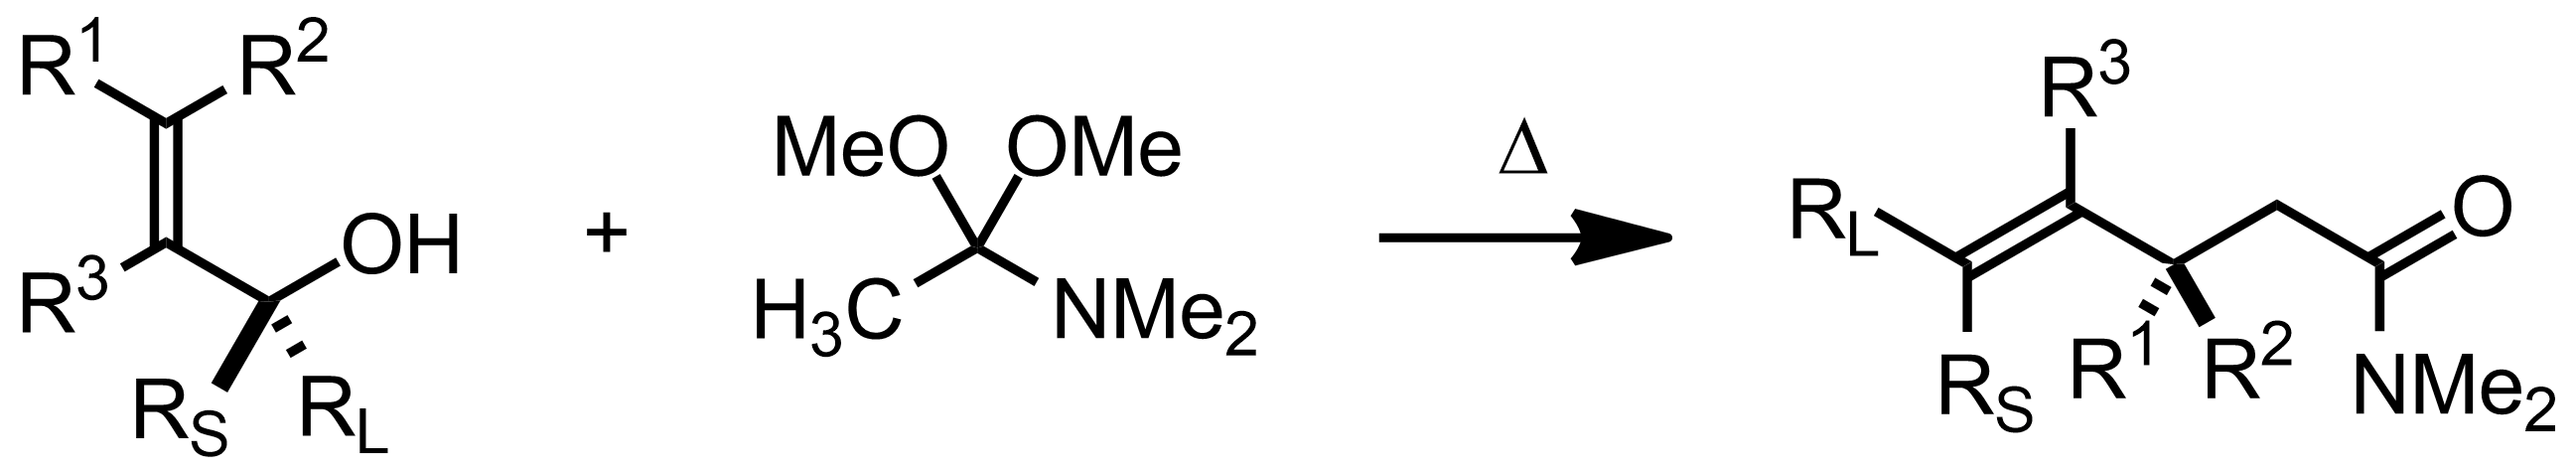 Schematic representation of the Eschenmoser-Claisen Rearrangement.